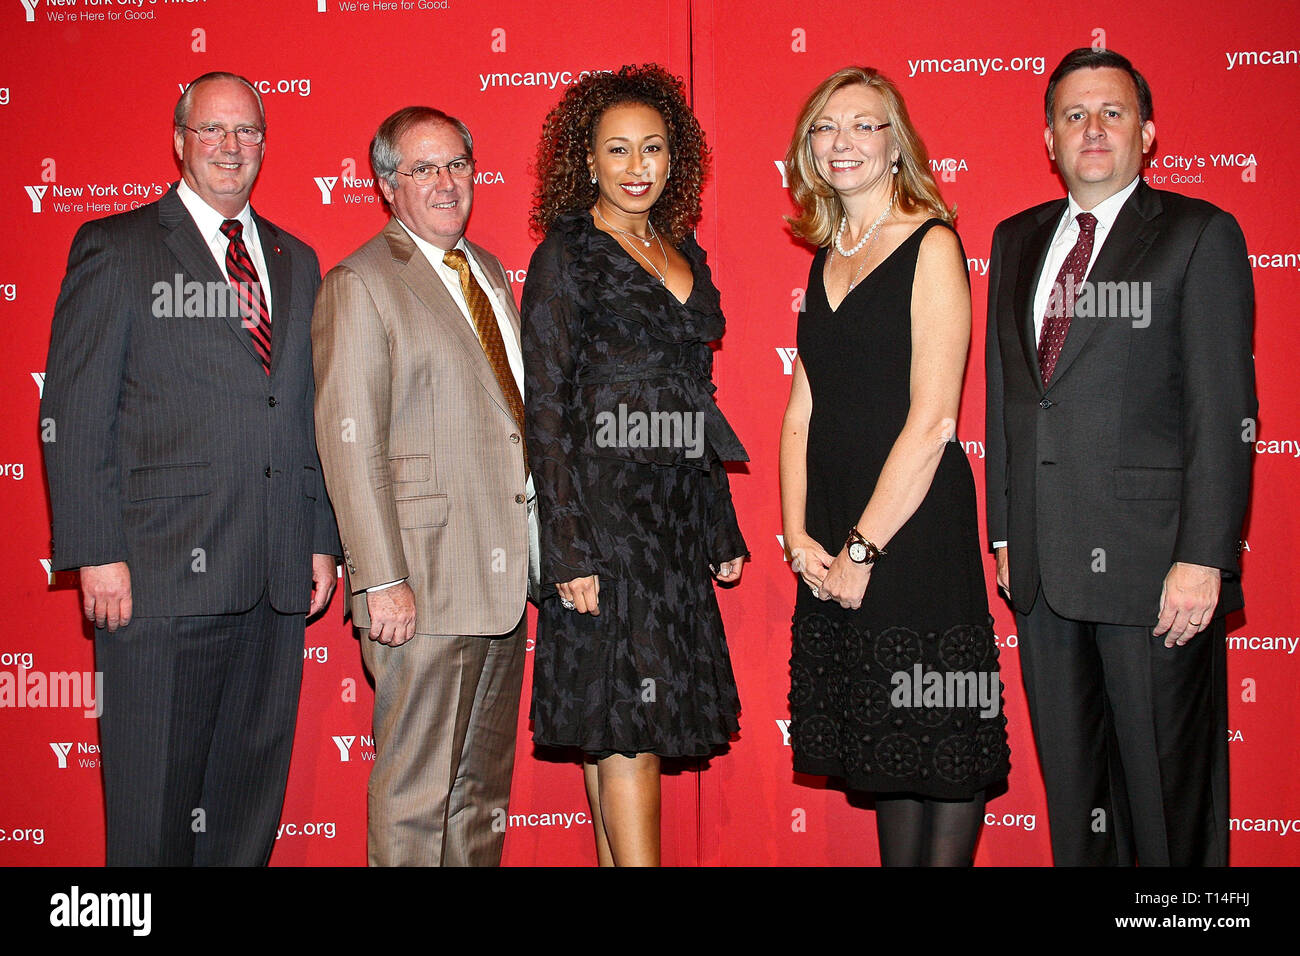 New York, NY, USA. 26 Oct, 2009. President/CEO of YMCA of Greater New York Jack Lund, Chair of the YMCA Board and Chairman/CEO of Con Edison, Kevin Burke, actress, Tamara Tunie, Vice Chair and EVP at The Nielsen Company, Susan Whiting, and President and CEO of Meridian Capital, William Lawrence at The Monday, Oct 26, 2009 YMCA's Arts & Letters Auction and Reception at Frederick P. Rose Hall, Jazz at Lincoln Center in New York, NY, USA. Credit: Steve Mack/S.D. Mack Pictures/Alamy Stock Photo